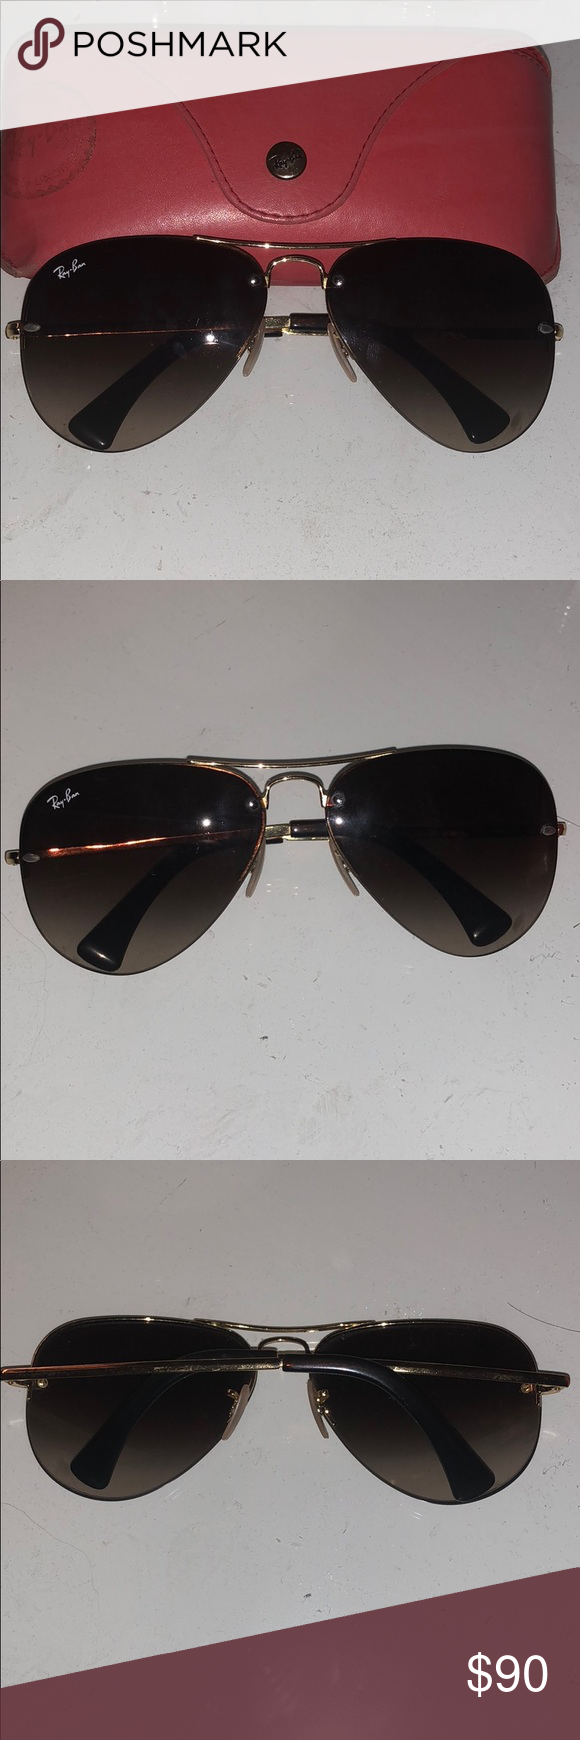 953e7e2158e Authentic Ray-ban gold frameless sunglasses Authentic Women ray-ban gold  frameless aviator sunglasses. Fairly worn condition but still great quality  !